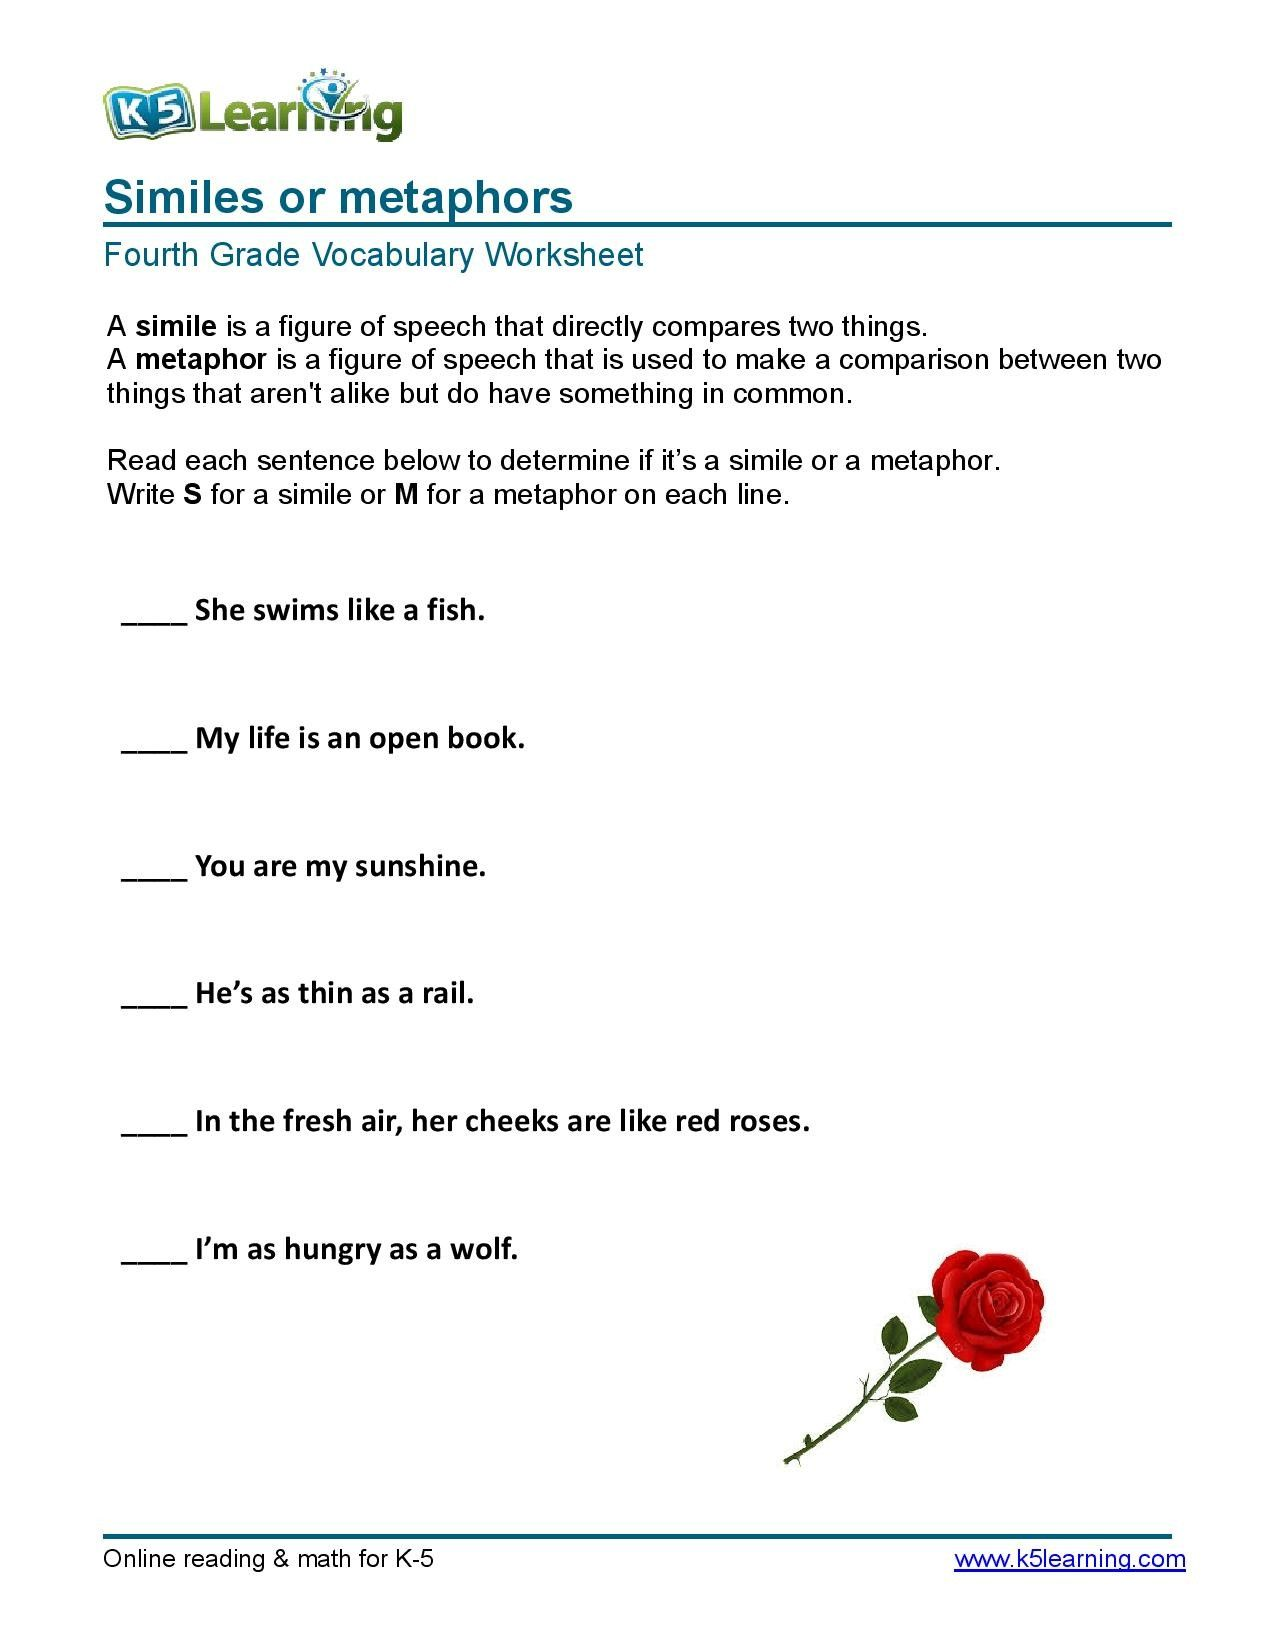 Similes Or Metaphors For Grade4 And More Check K5learning